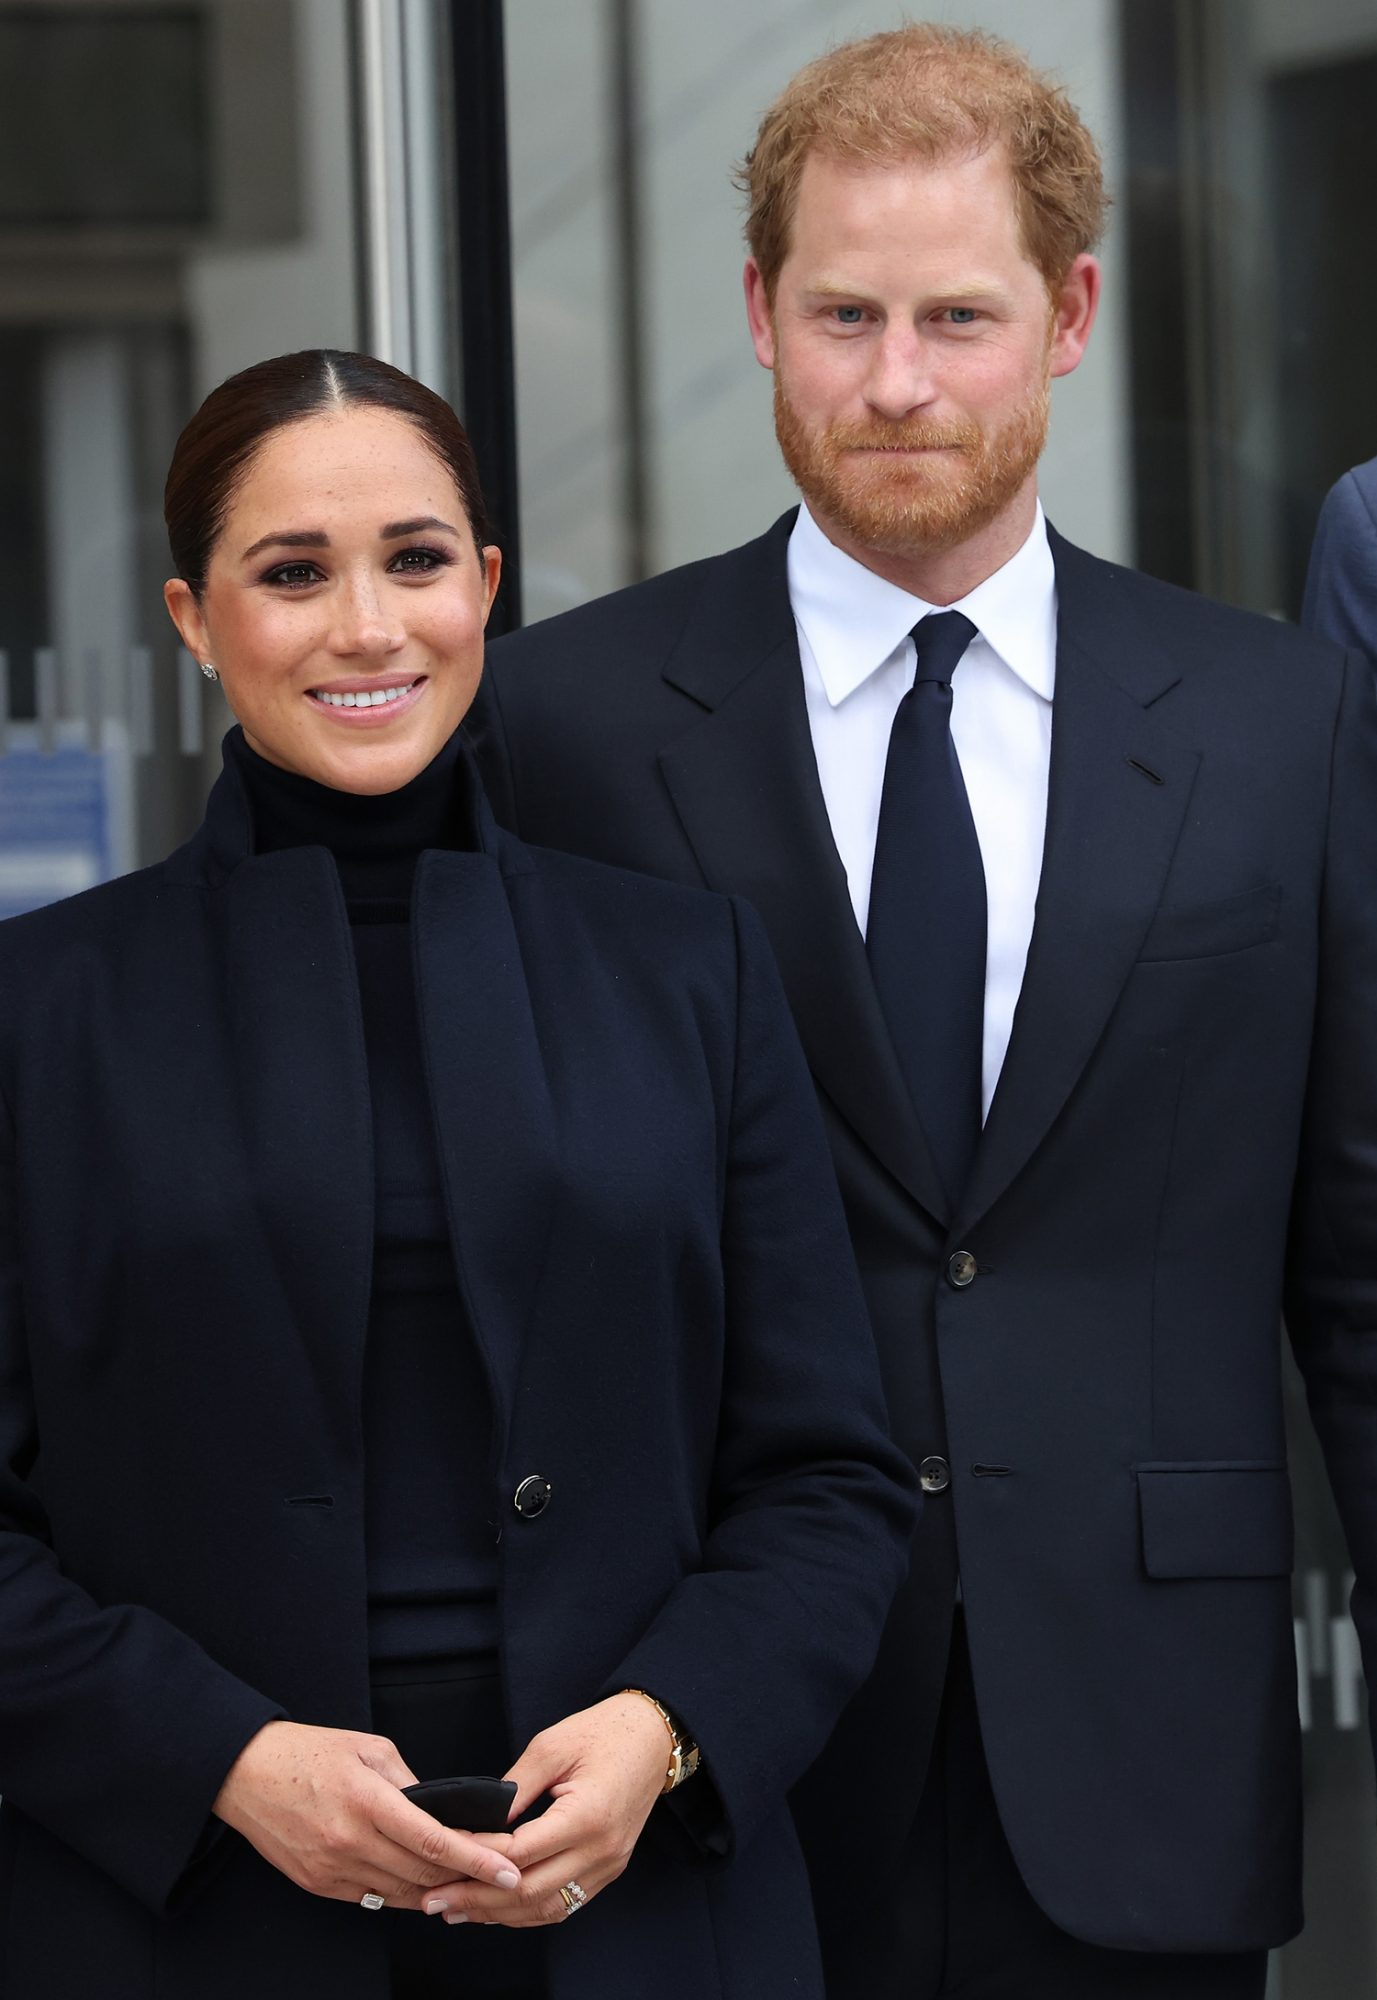 The Duke And Duchess Of Sussex Visit One World Observatory Meghan Markle prince harry